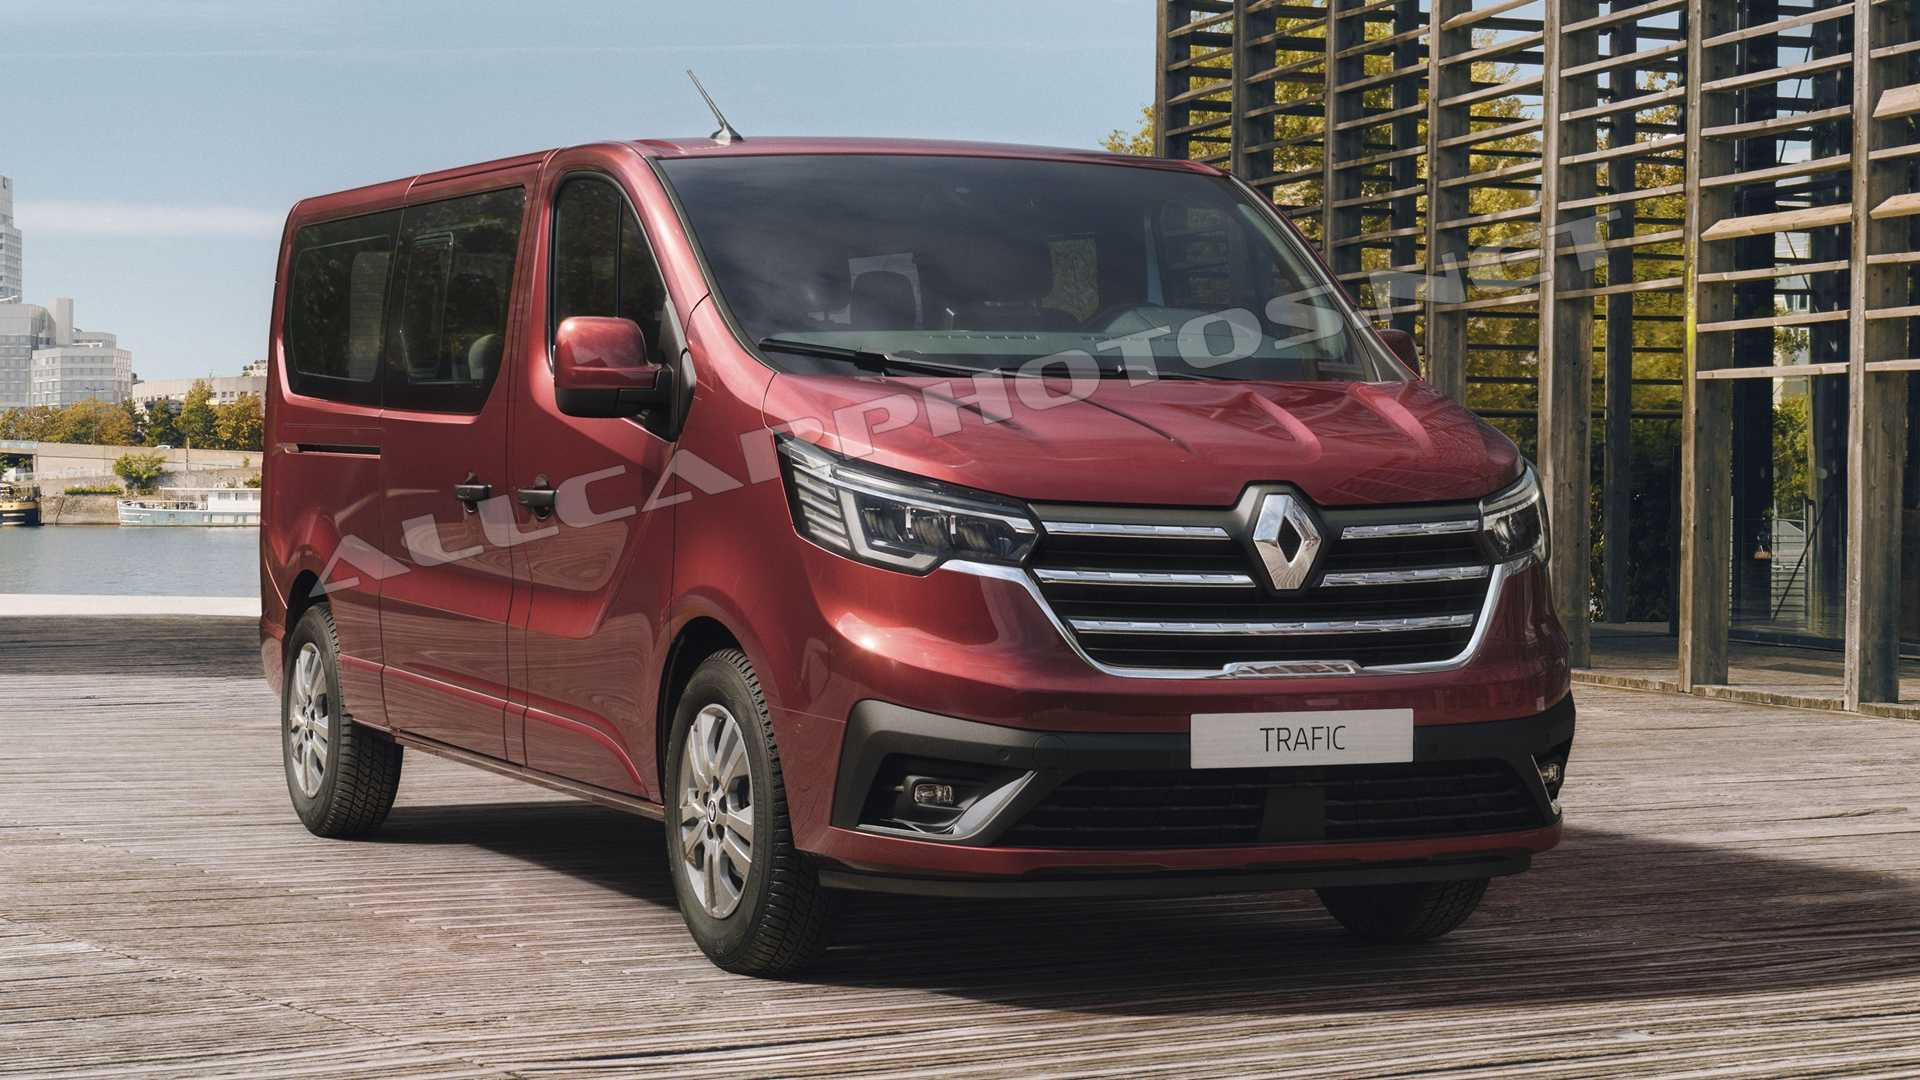 Zdjęcie Renault Trafic 2021: It was debuts with its renewed face